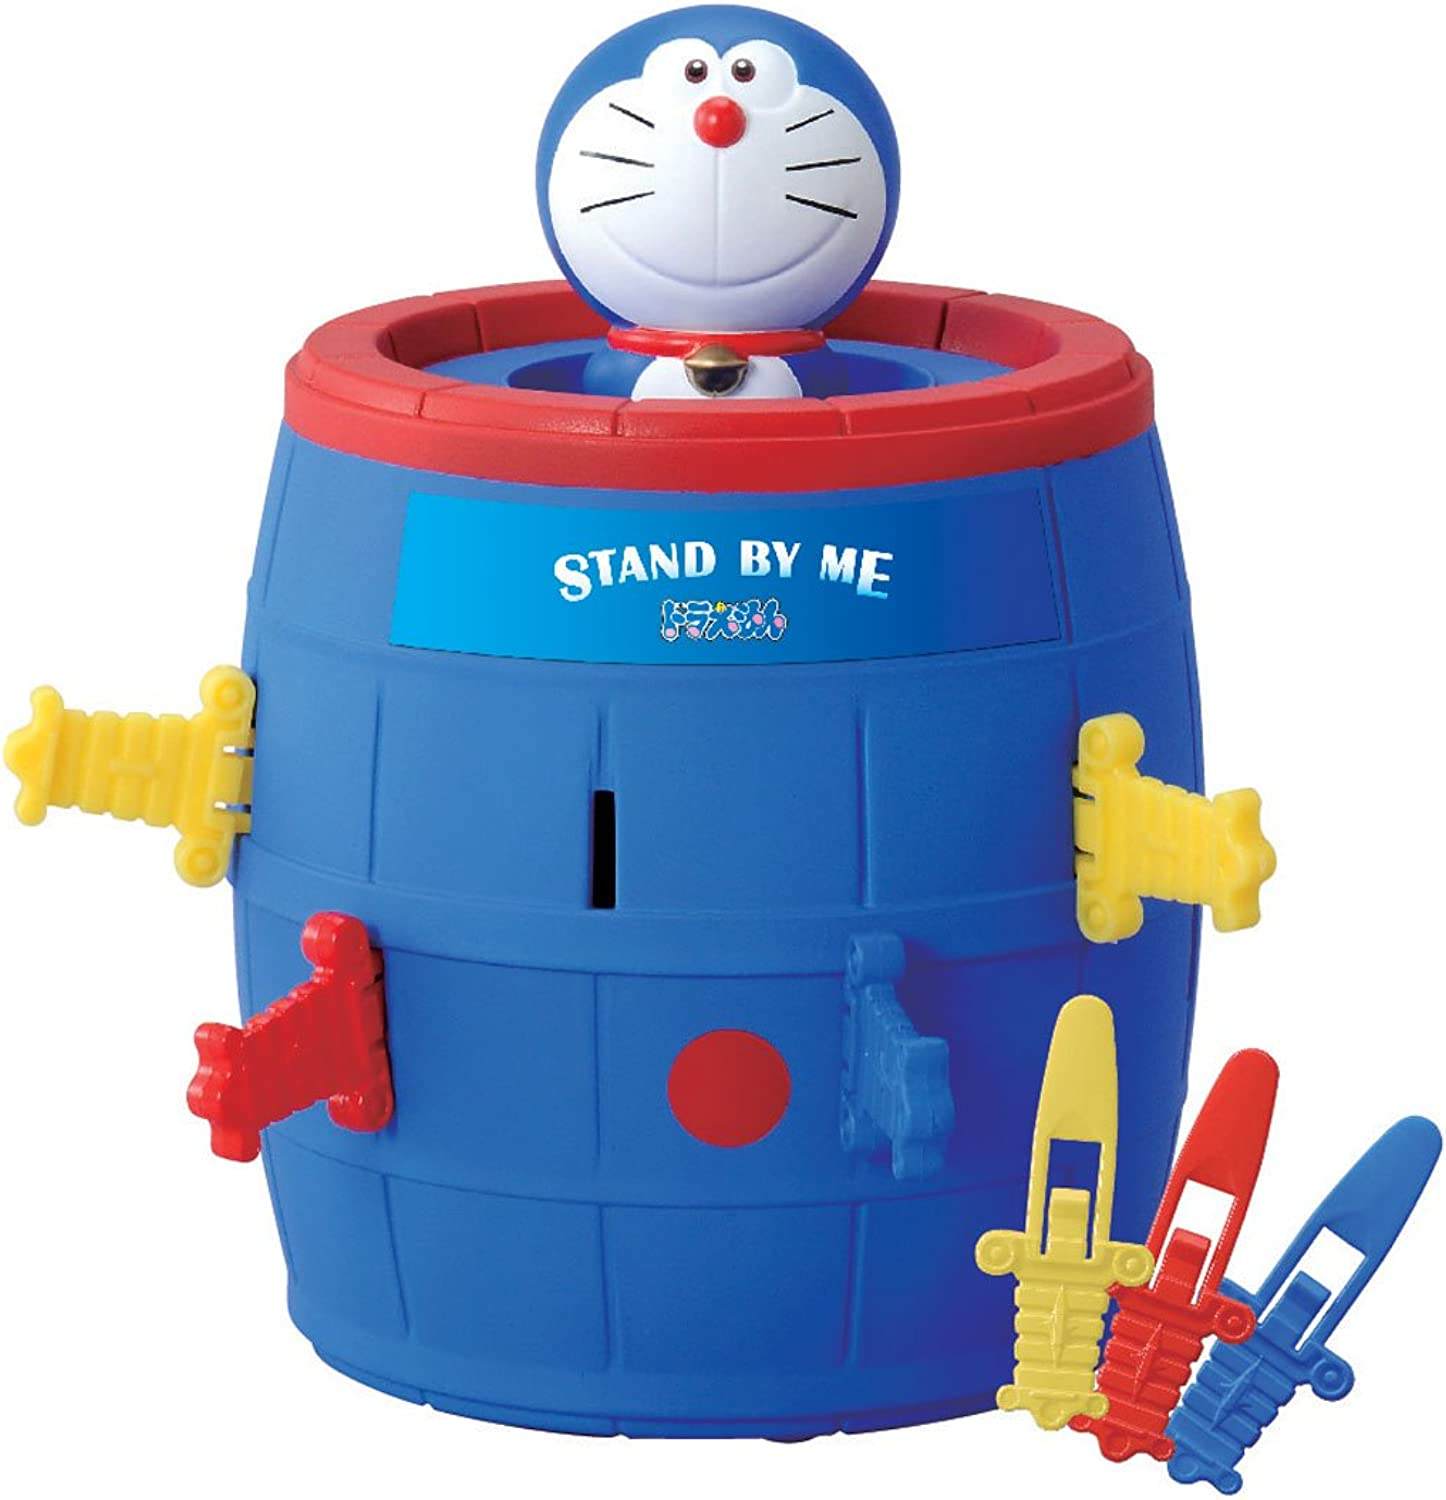 STAND BY ME Doraemon Boss